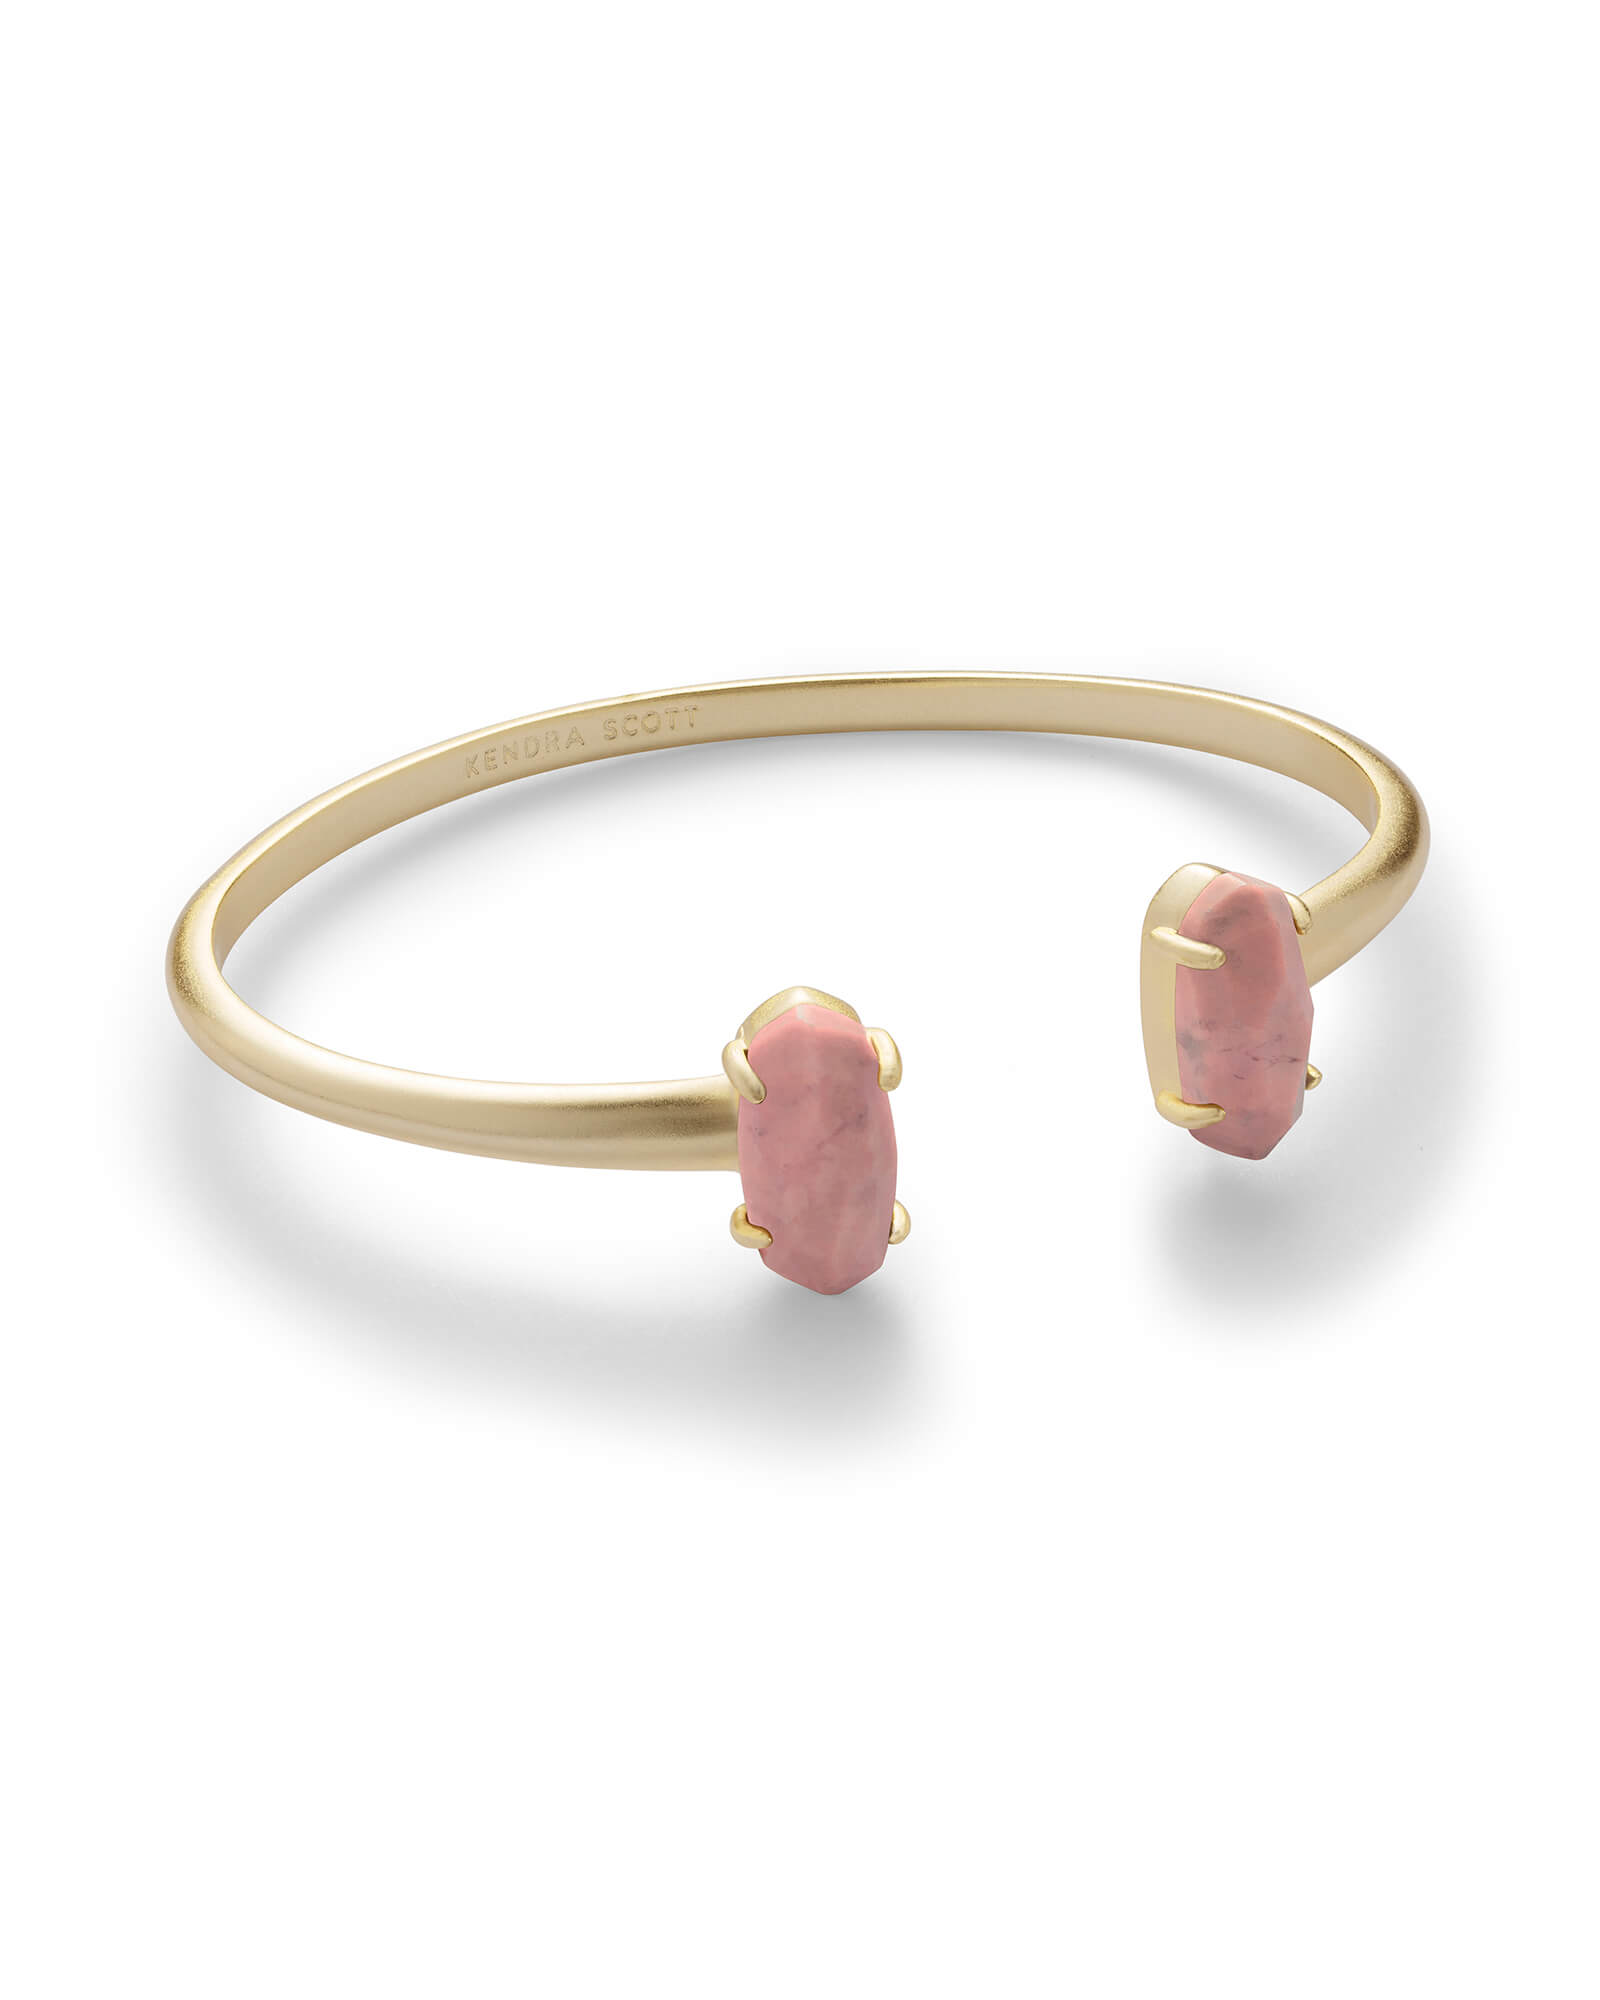 Edie Gold Cuff Bracelet in Pink Rhodonite